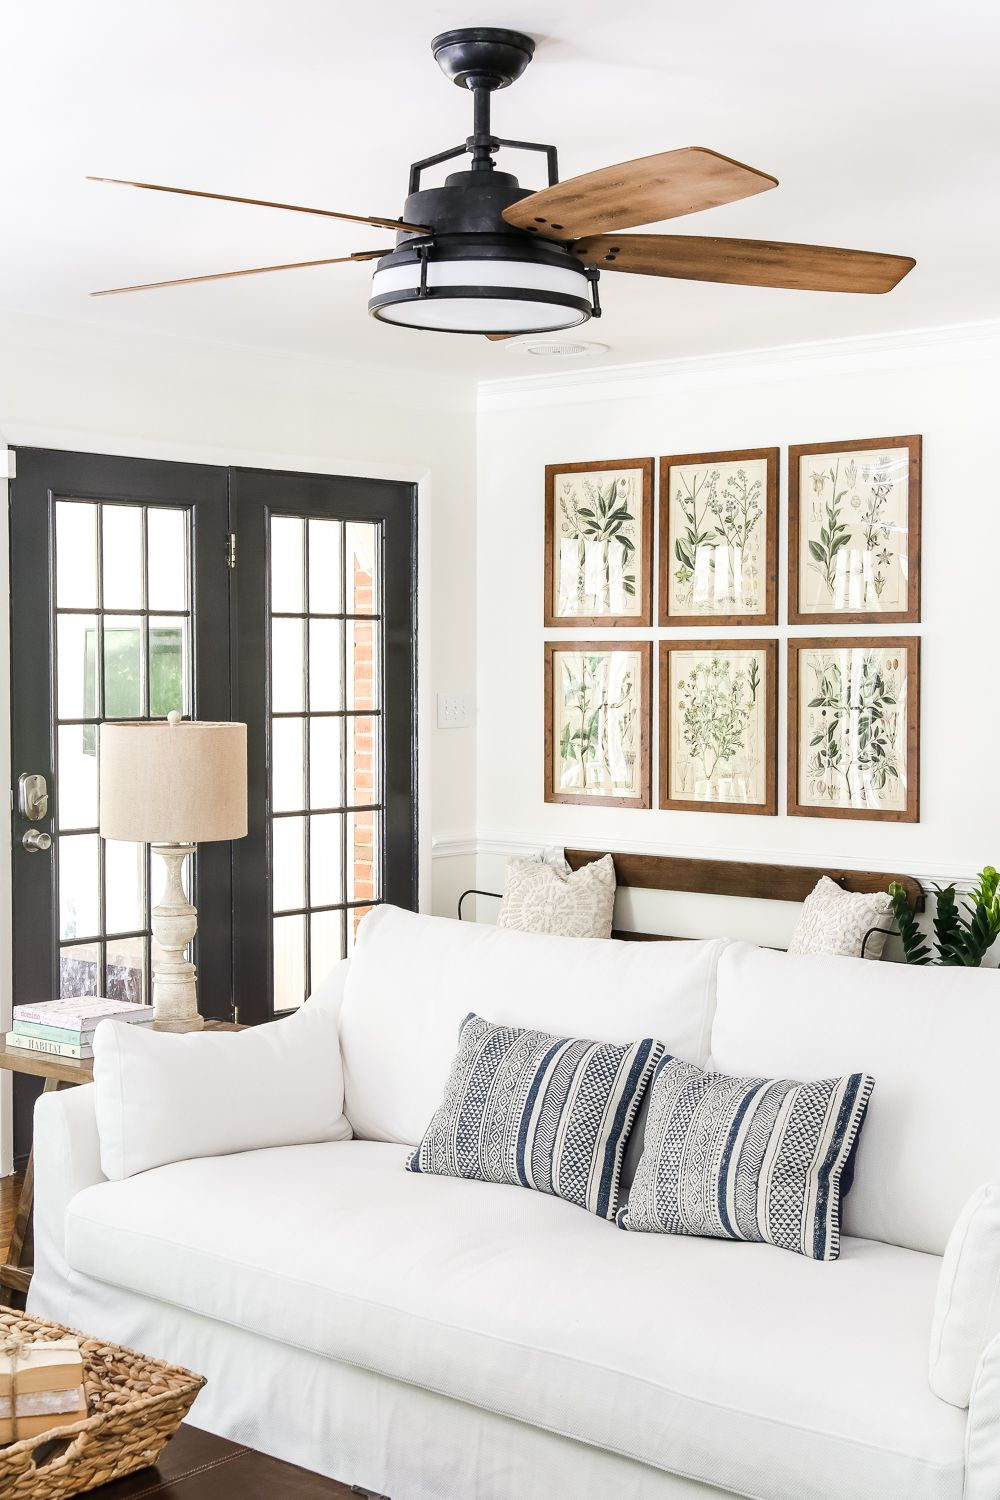 at ceilings elegant your style room home fans interior farmhouse decor with ceiling in lights plus for tips living choice